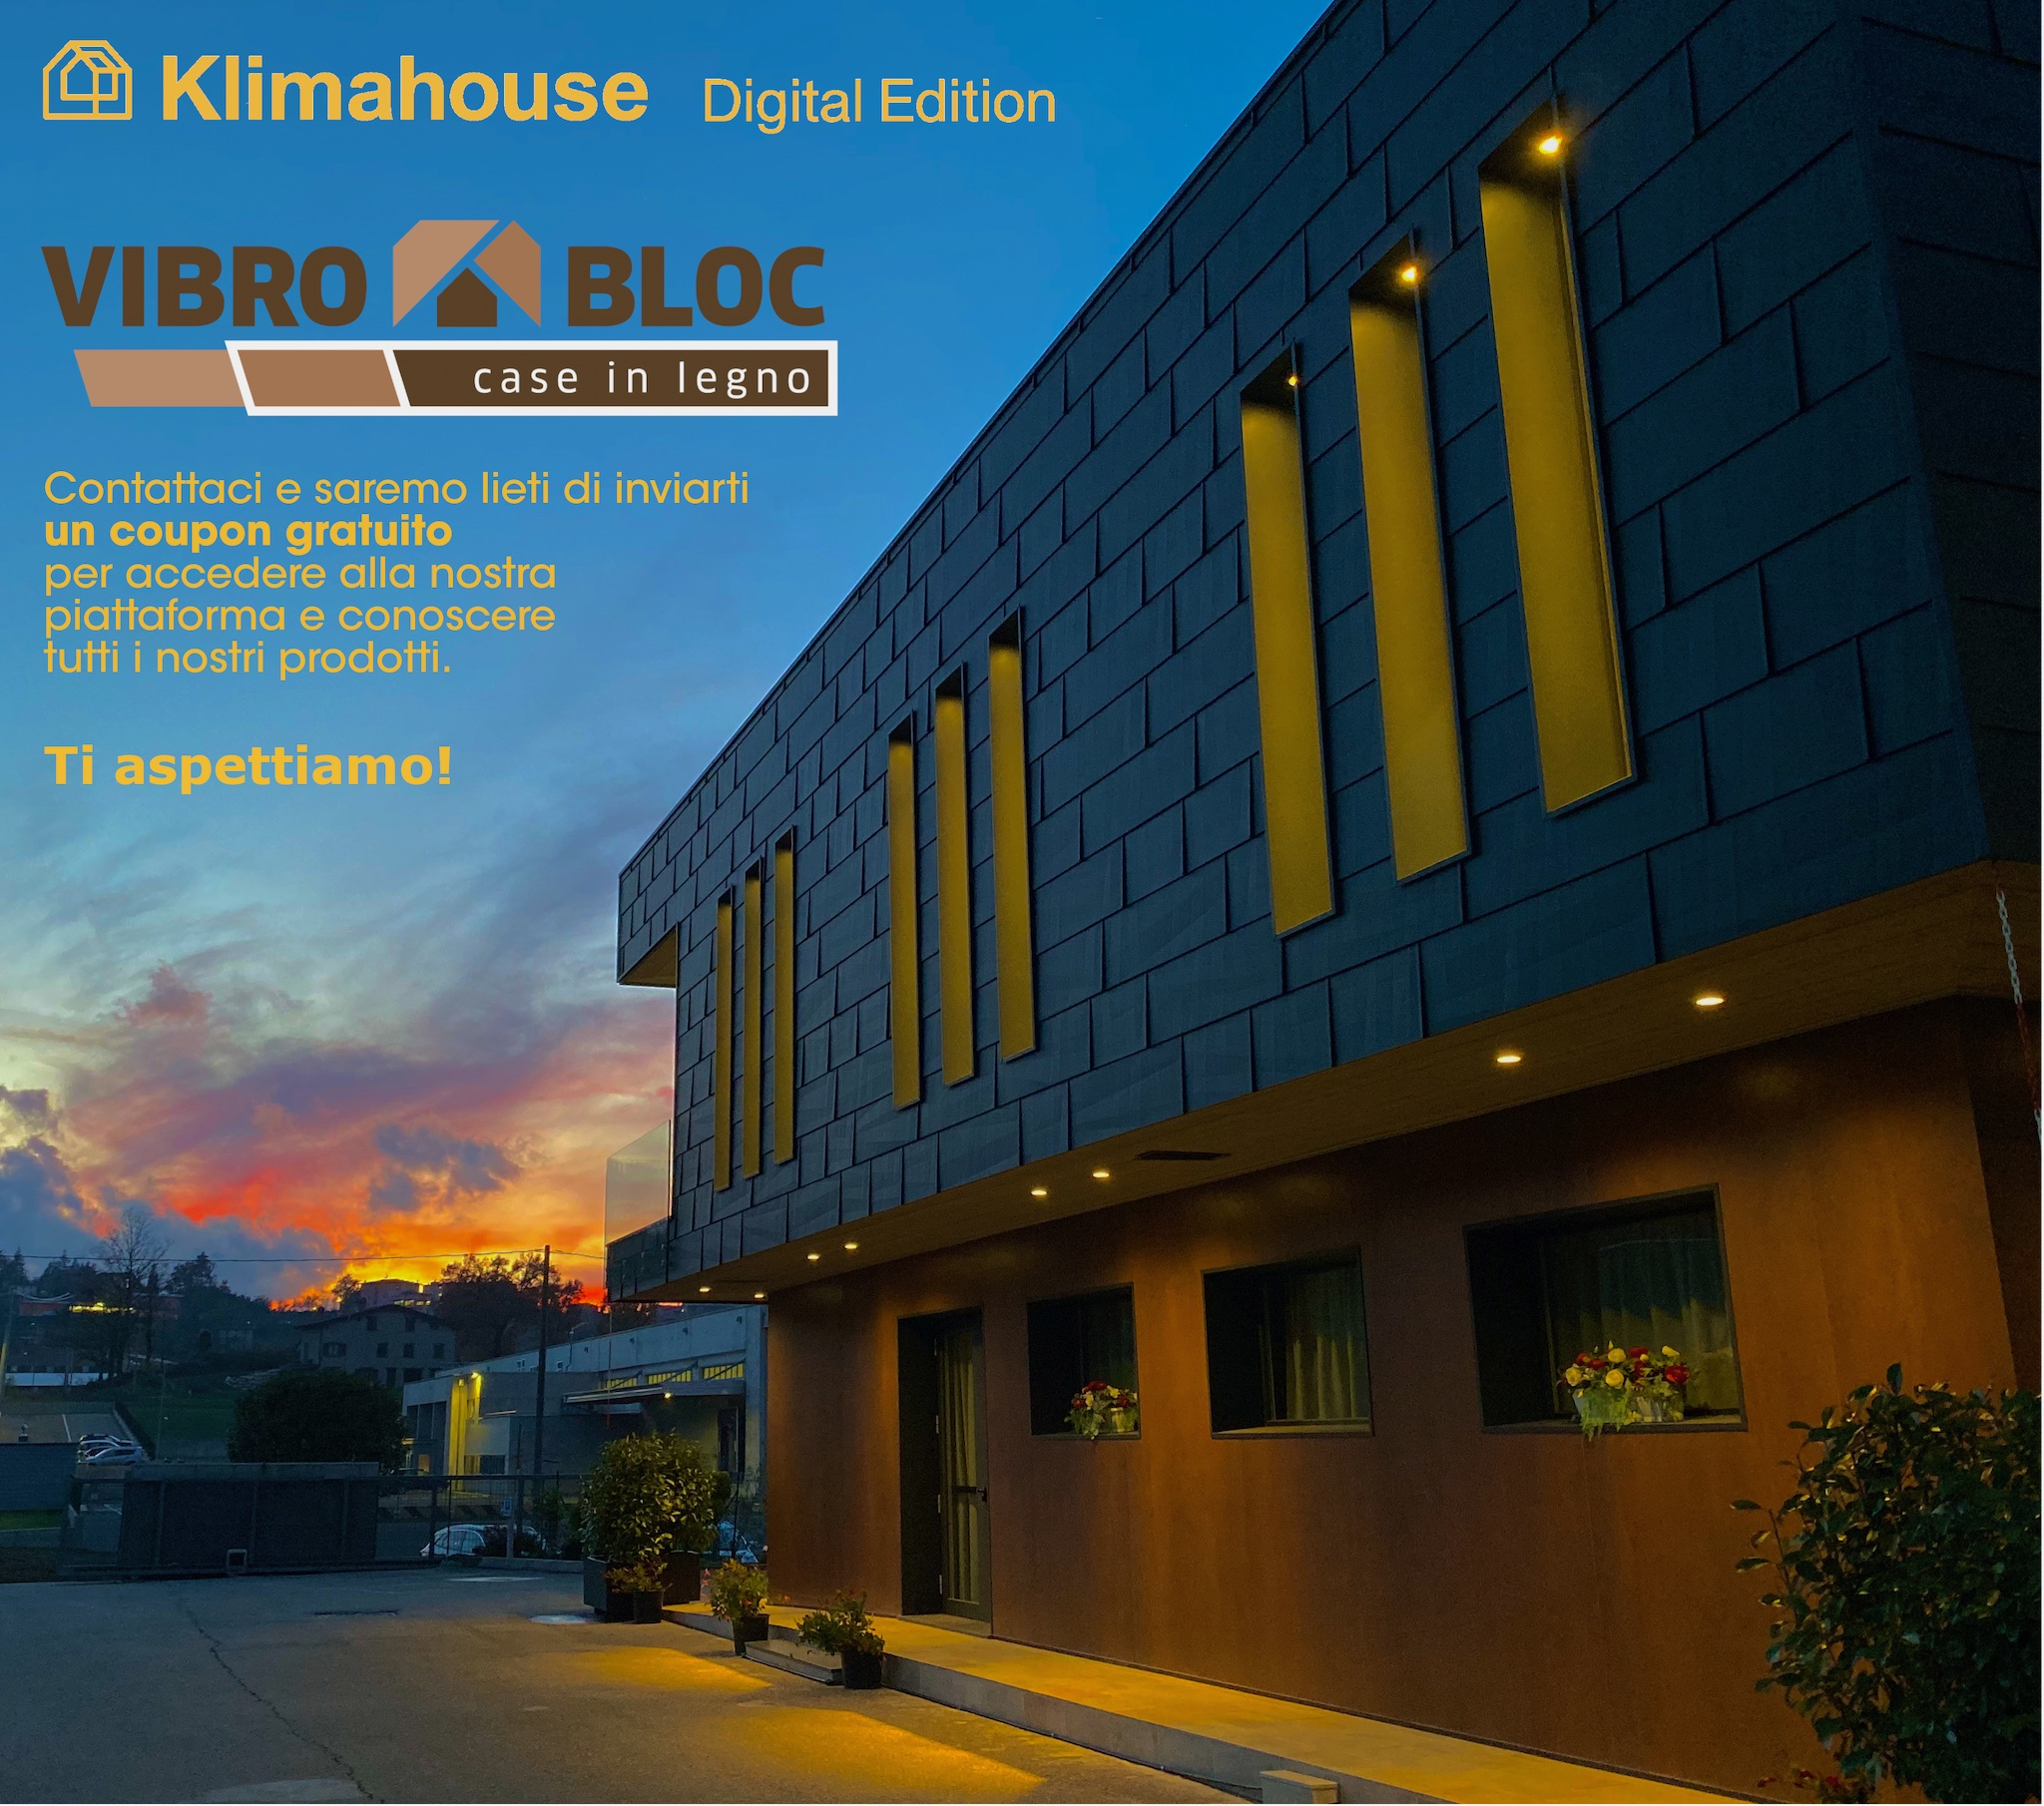 Klimahouse Digital Edition 2021